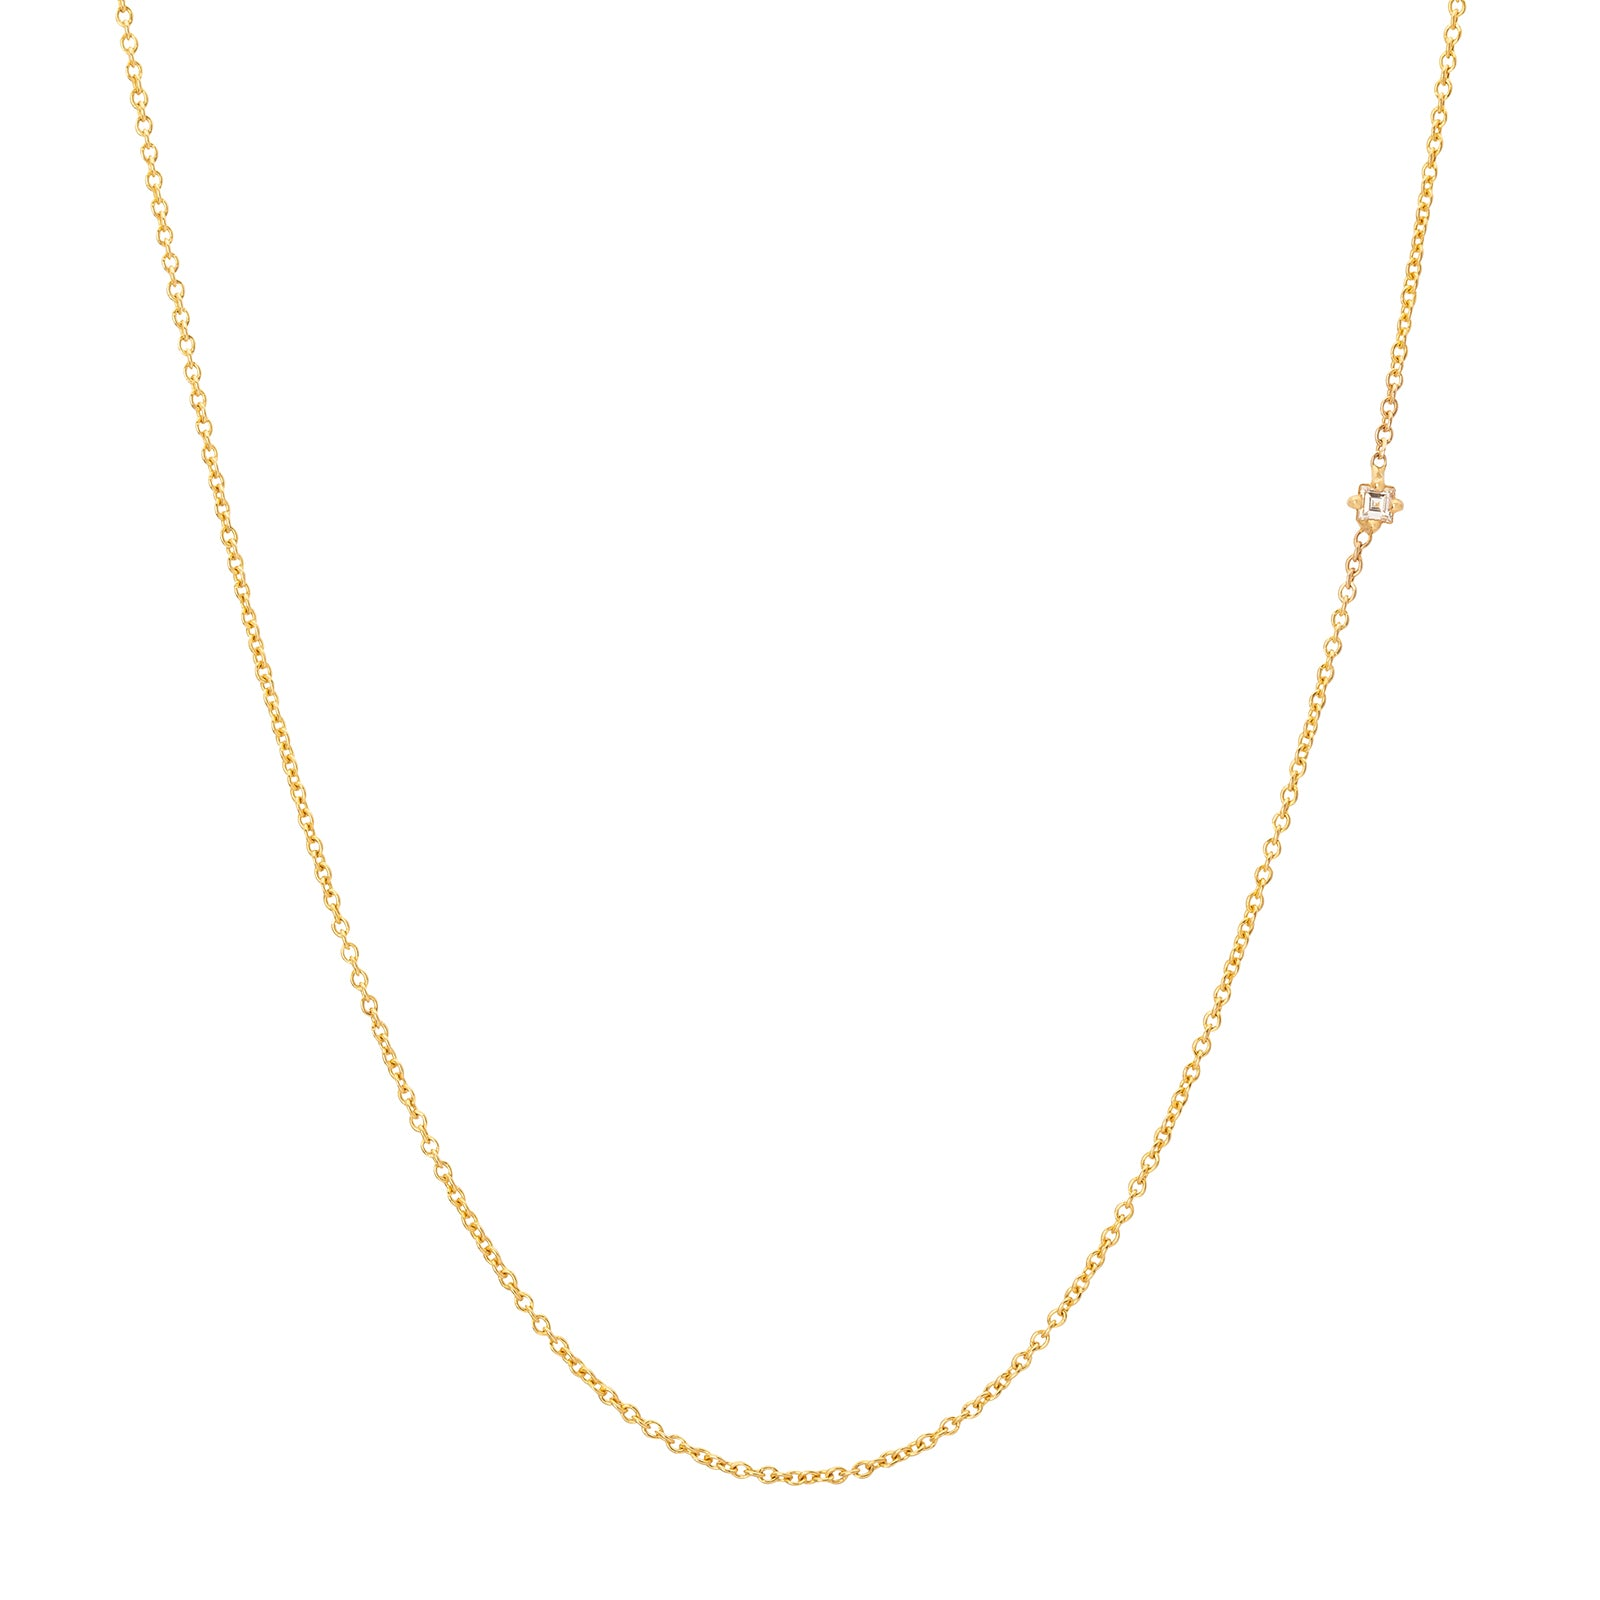 Lizzie Mandler Carre Diamond Floating Necklace - Necklaces - Broken English Jewelry